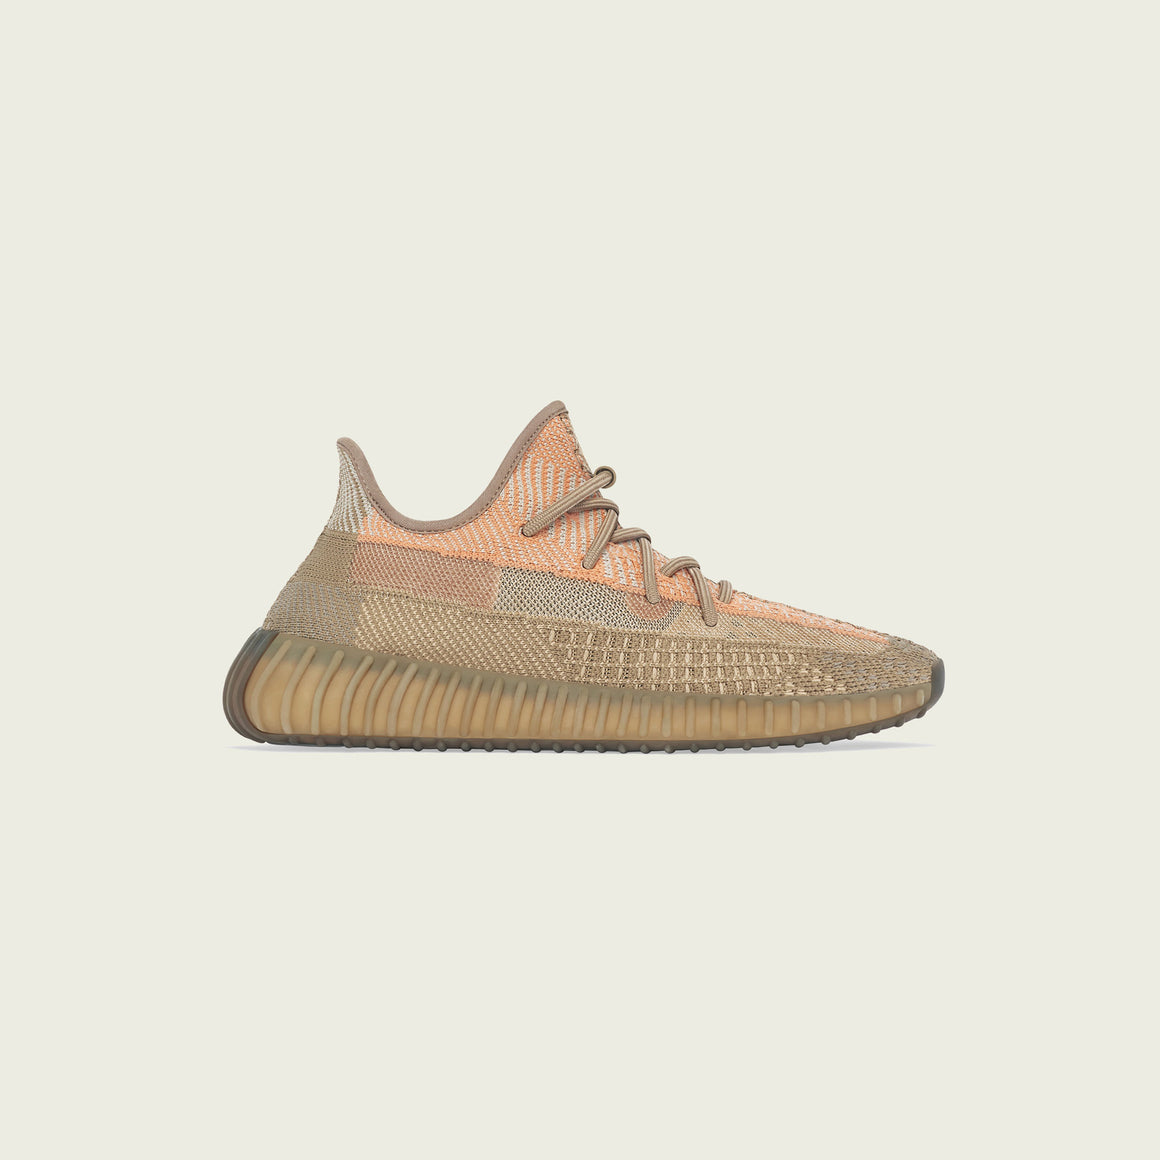 adidas - Yeezy Boost 350v2 - Sand/Taupe - Up There